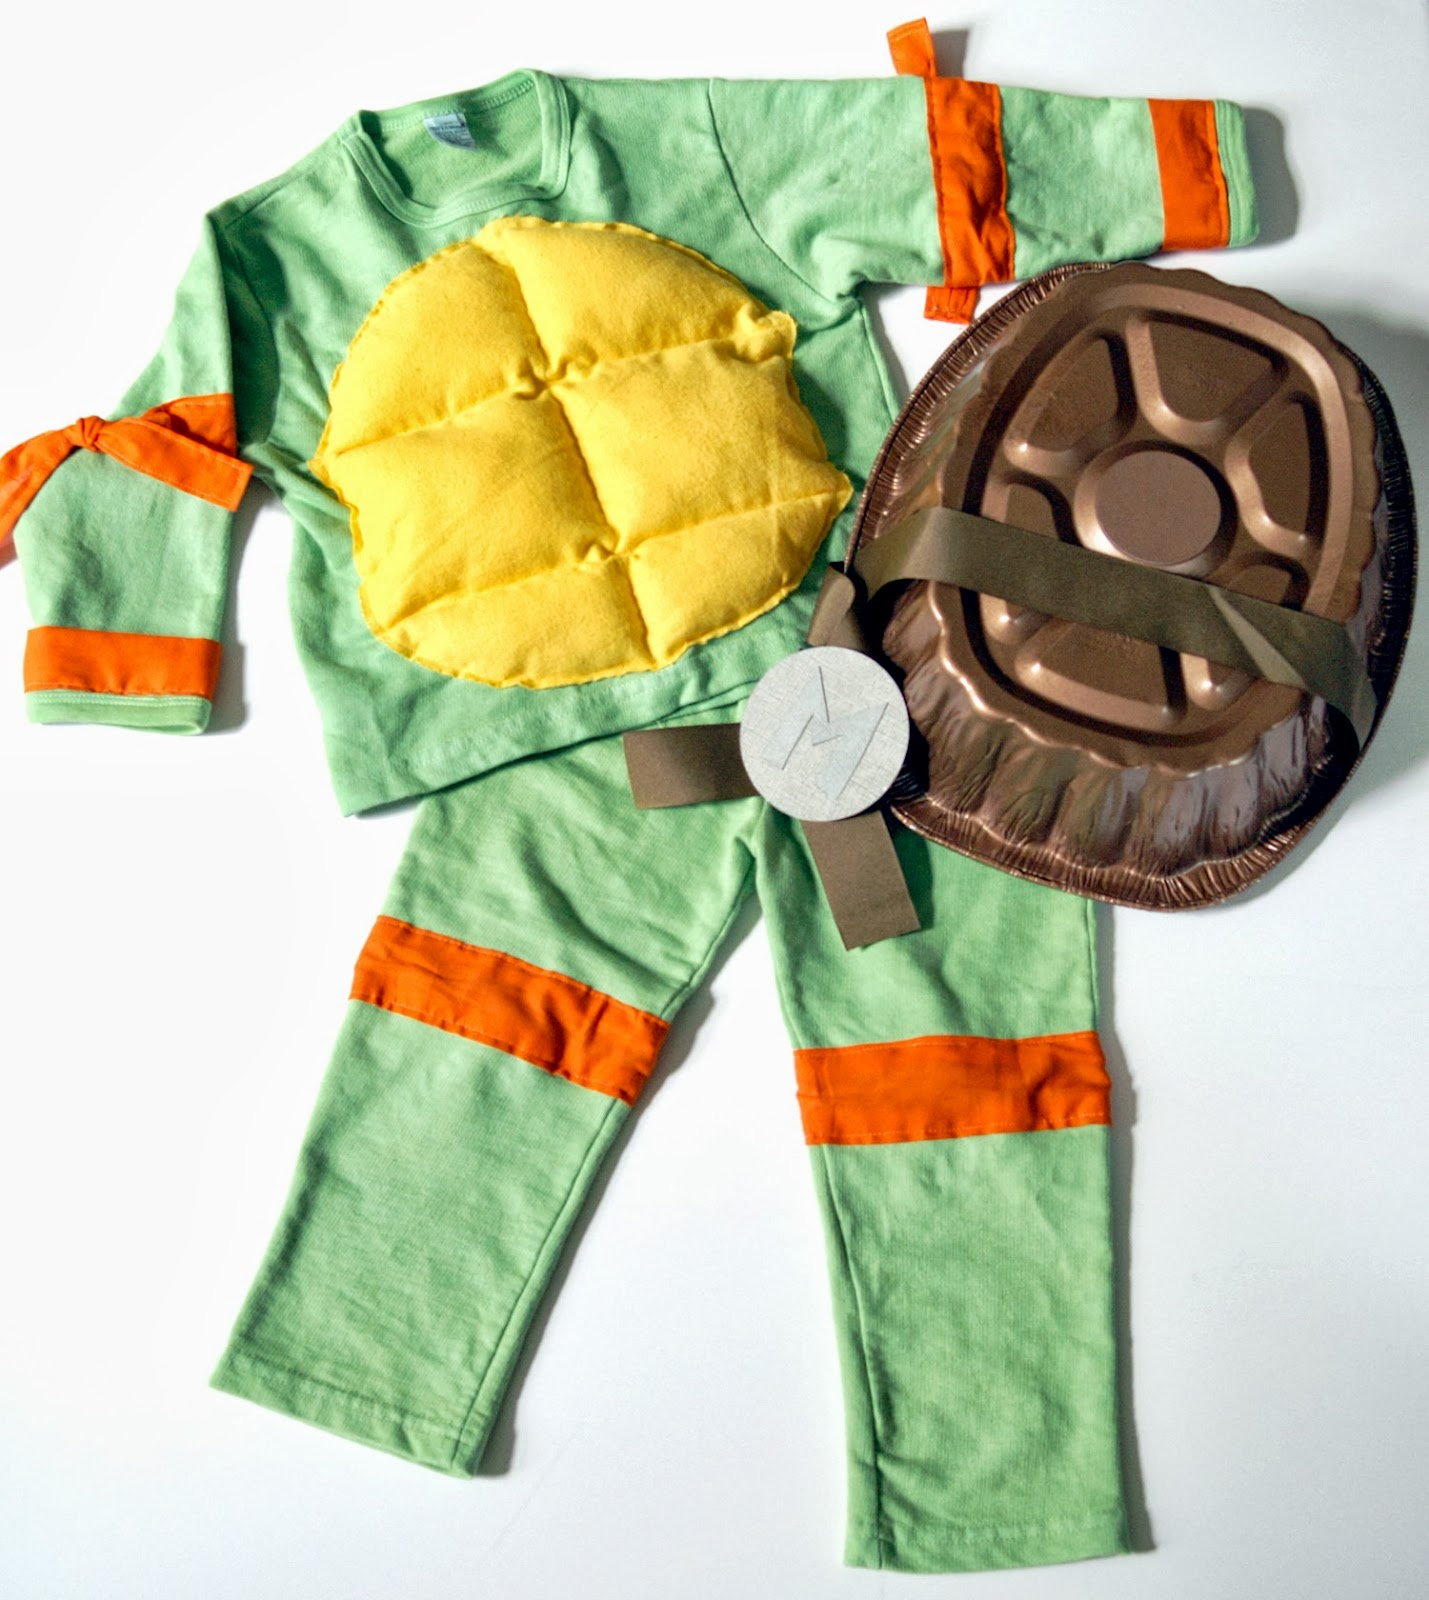 Teenage mutant ninja turtle costumes tmnt the scrap shoppe i would say depending on how much the sweats cost you can make this outfit for 15 which is definitely cheaper than you can purchase the costume solutioingenieria Image collections